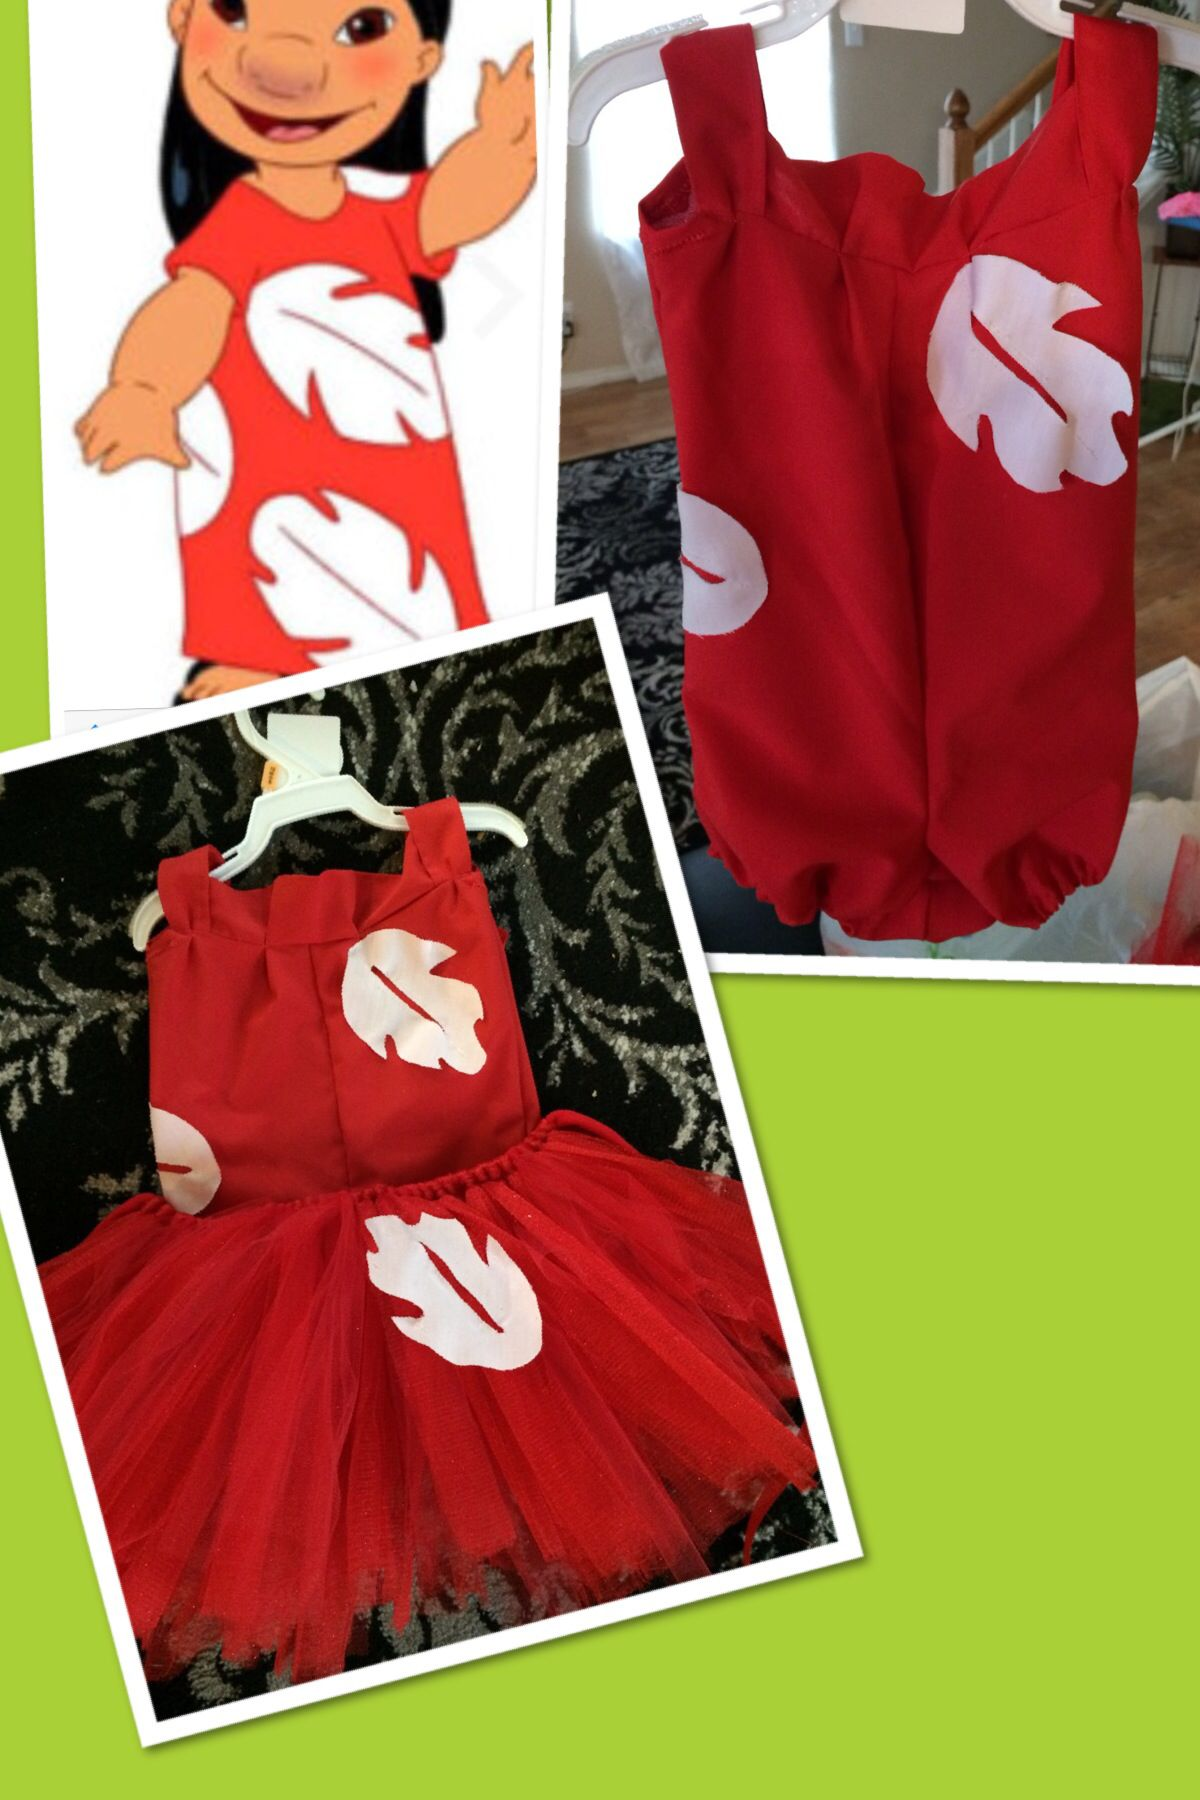 DIY Lilo onesie and tutu for a lilo and stitch party  dfd5725232c0